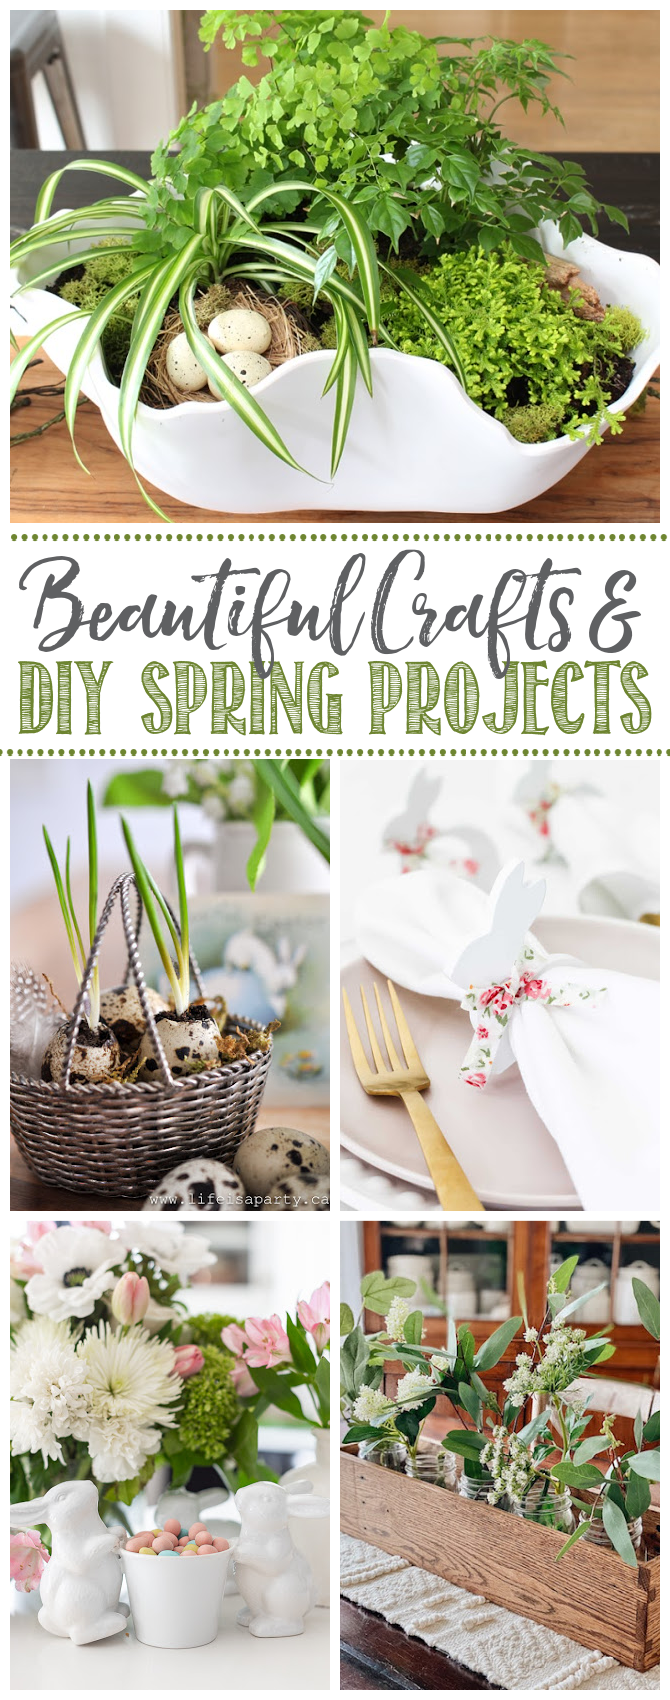 Collage of beautiful crafts and DIY spring projects.